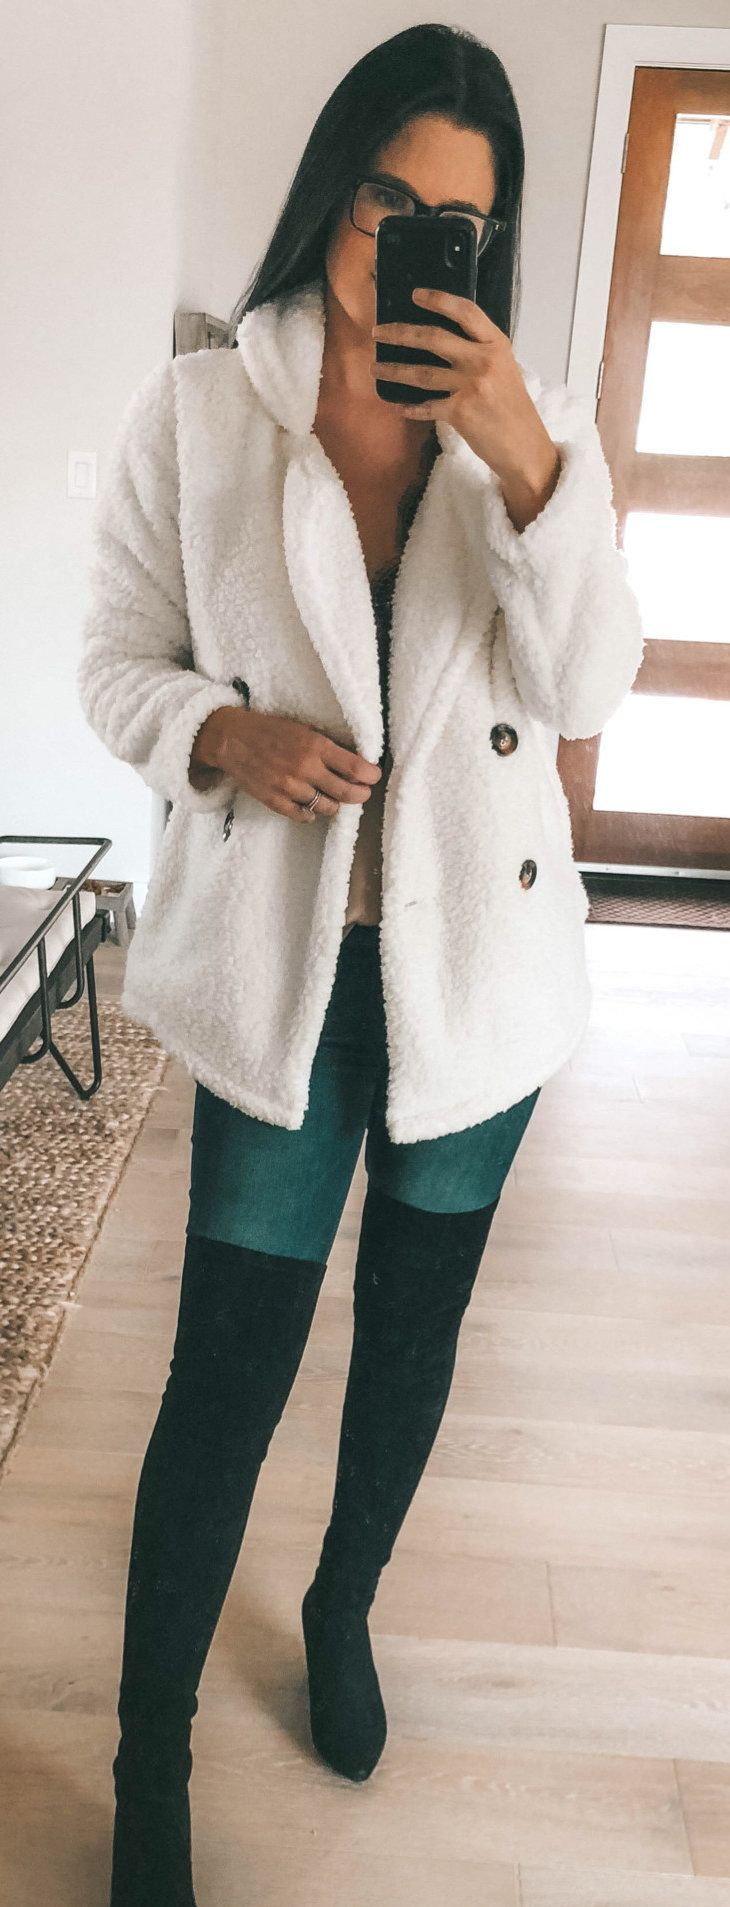 black and green leggings and white wool jacket